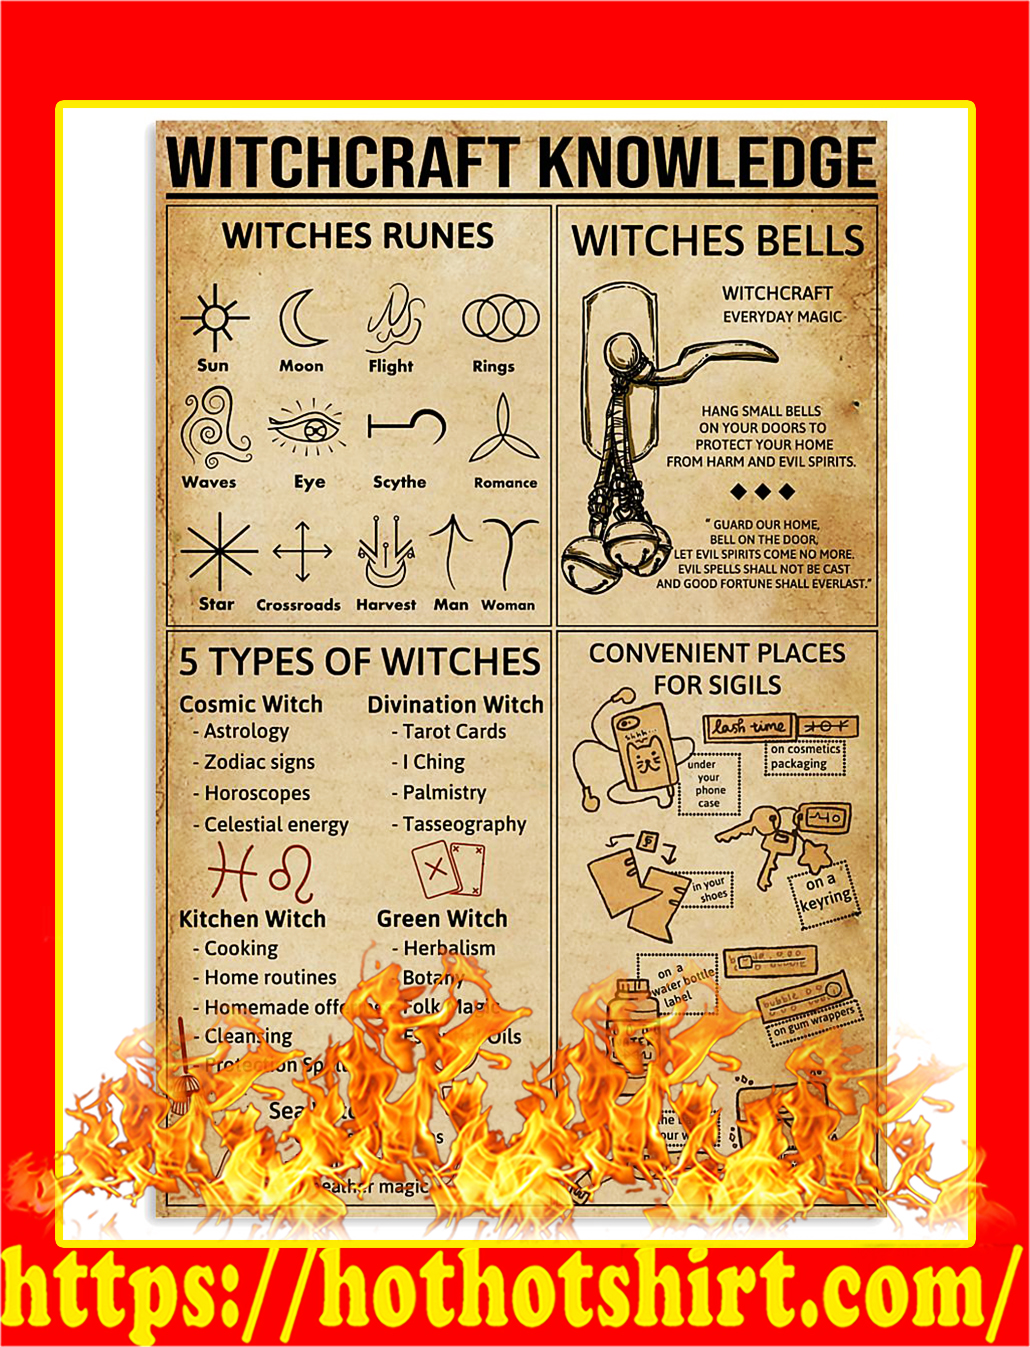 Witchcraft Knowledge Poster